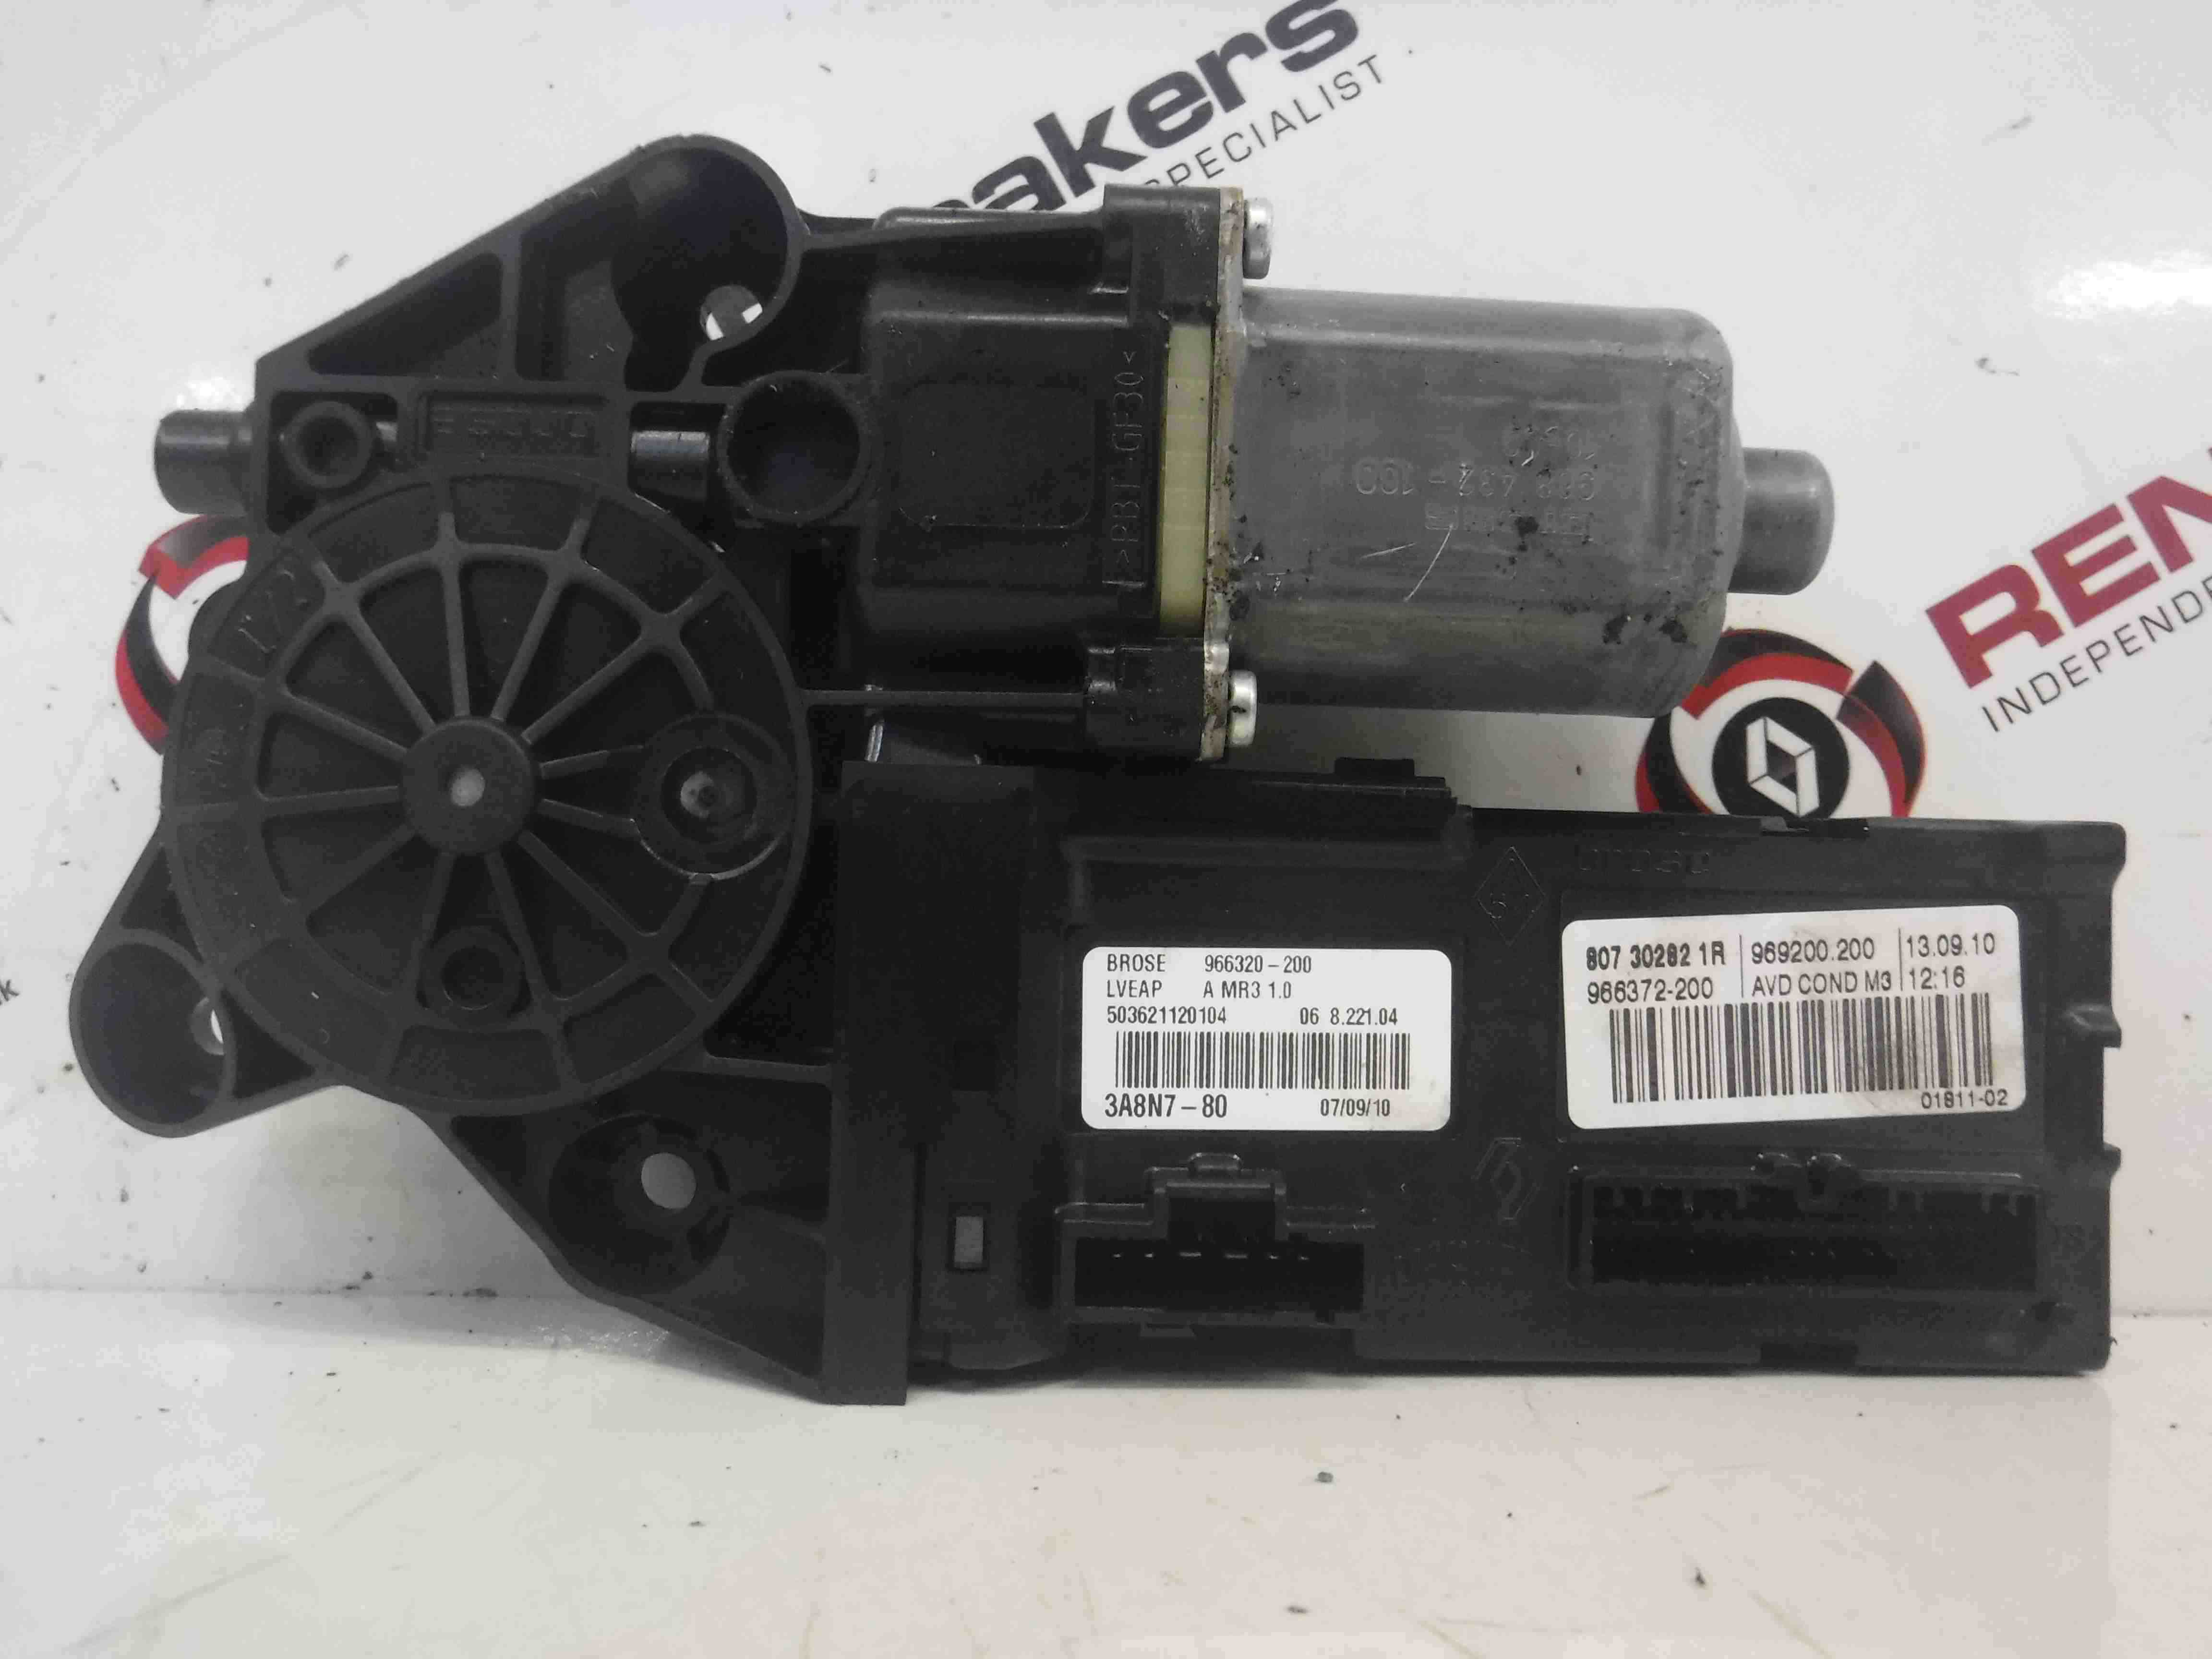 Renault Megane 2002-2008 Drivers OSF Front Window Motor 5dr 807302821R